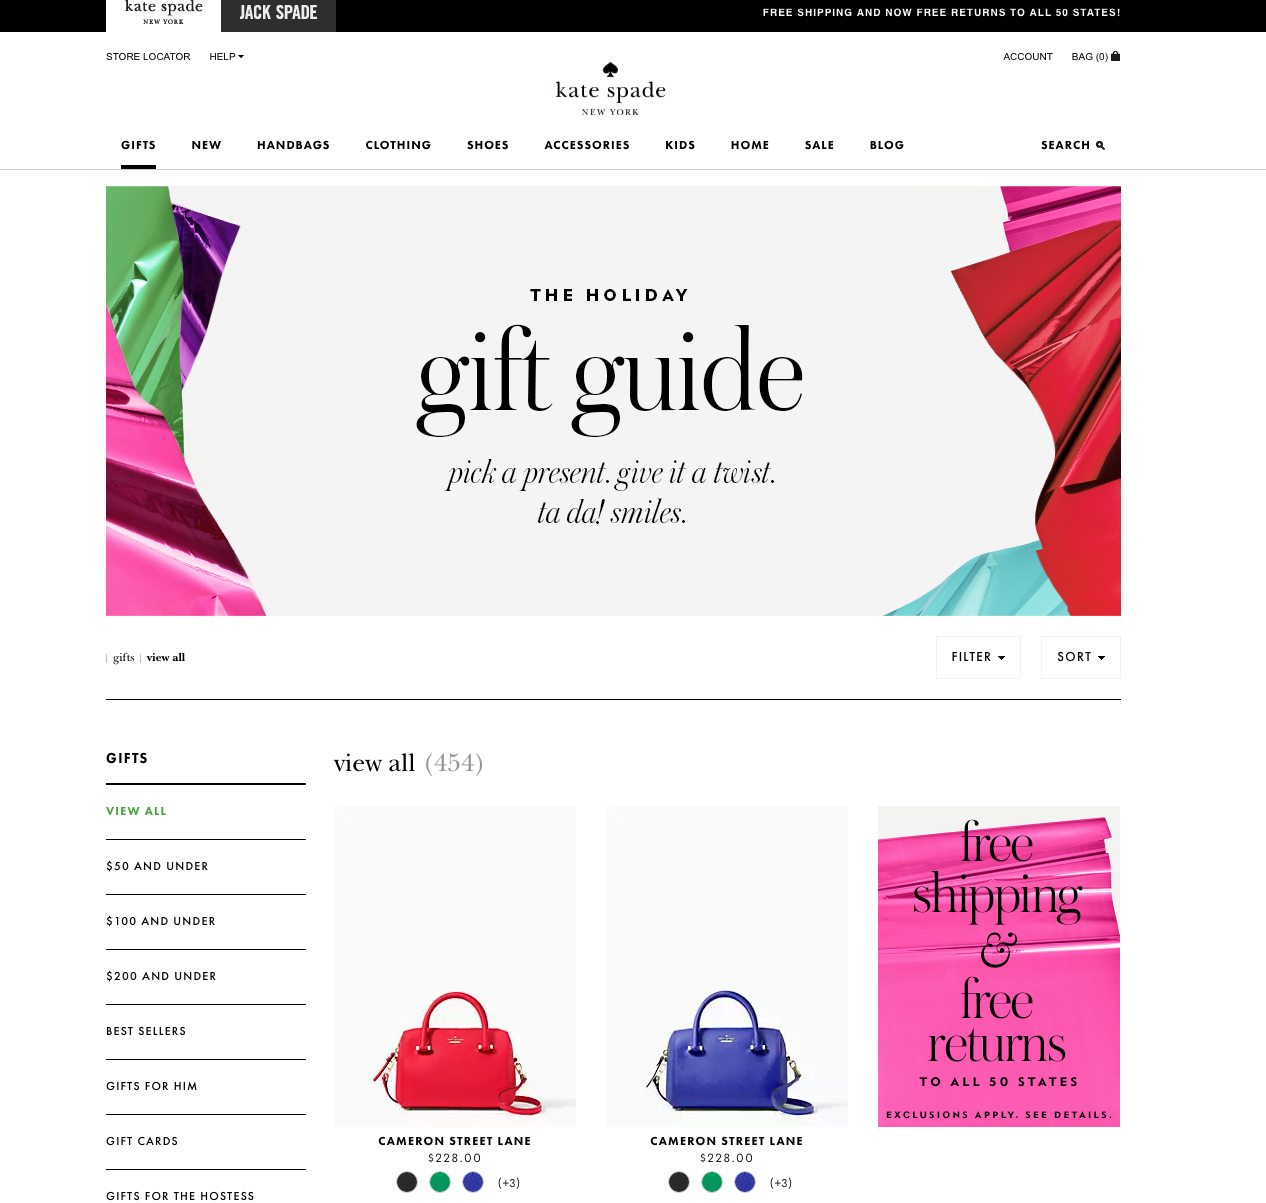 Kate Spade holiday gift guide